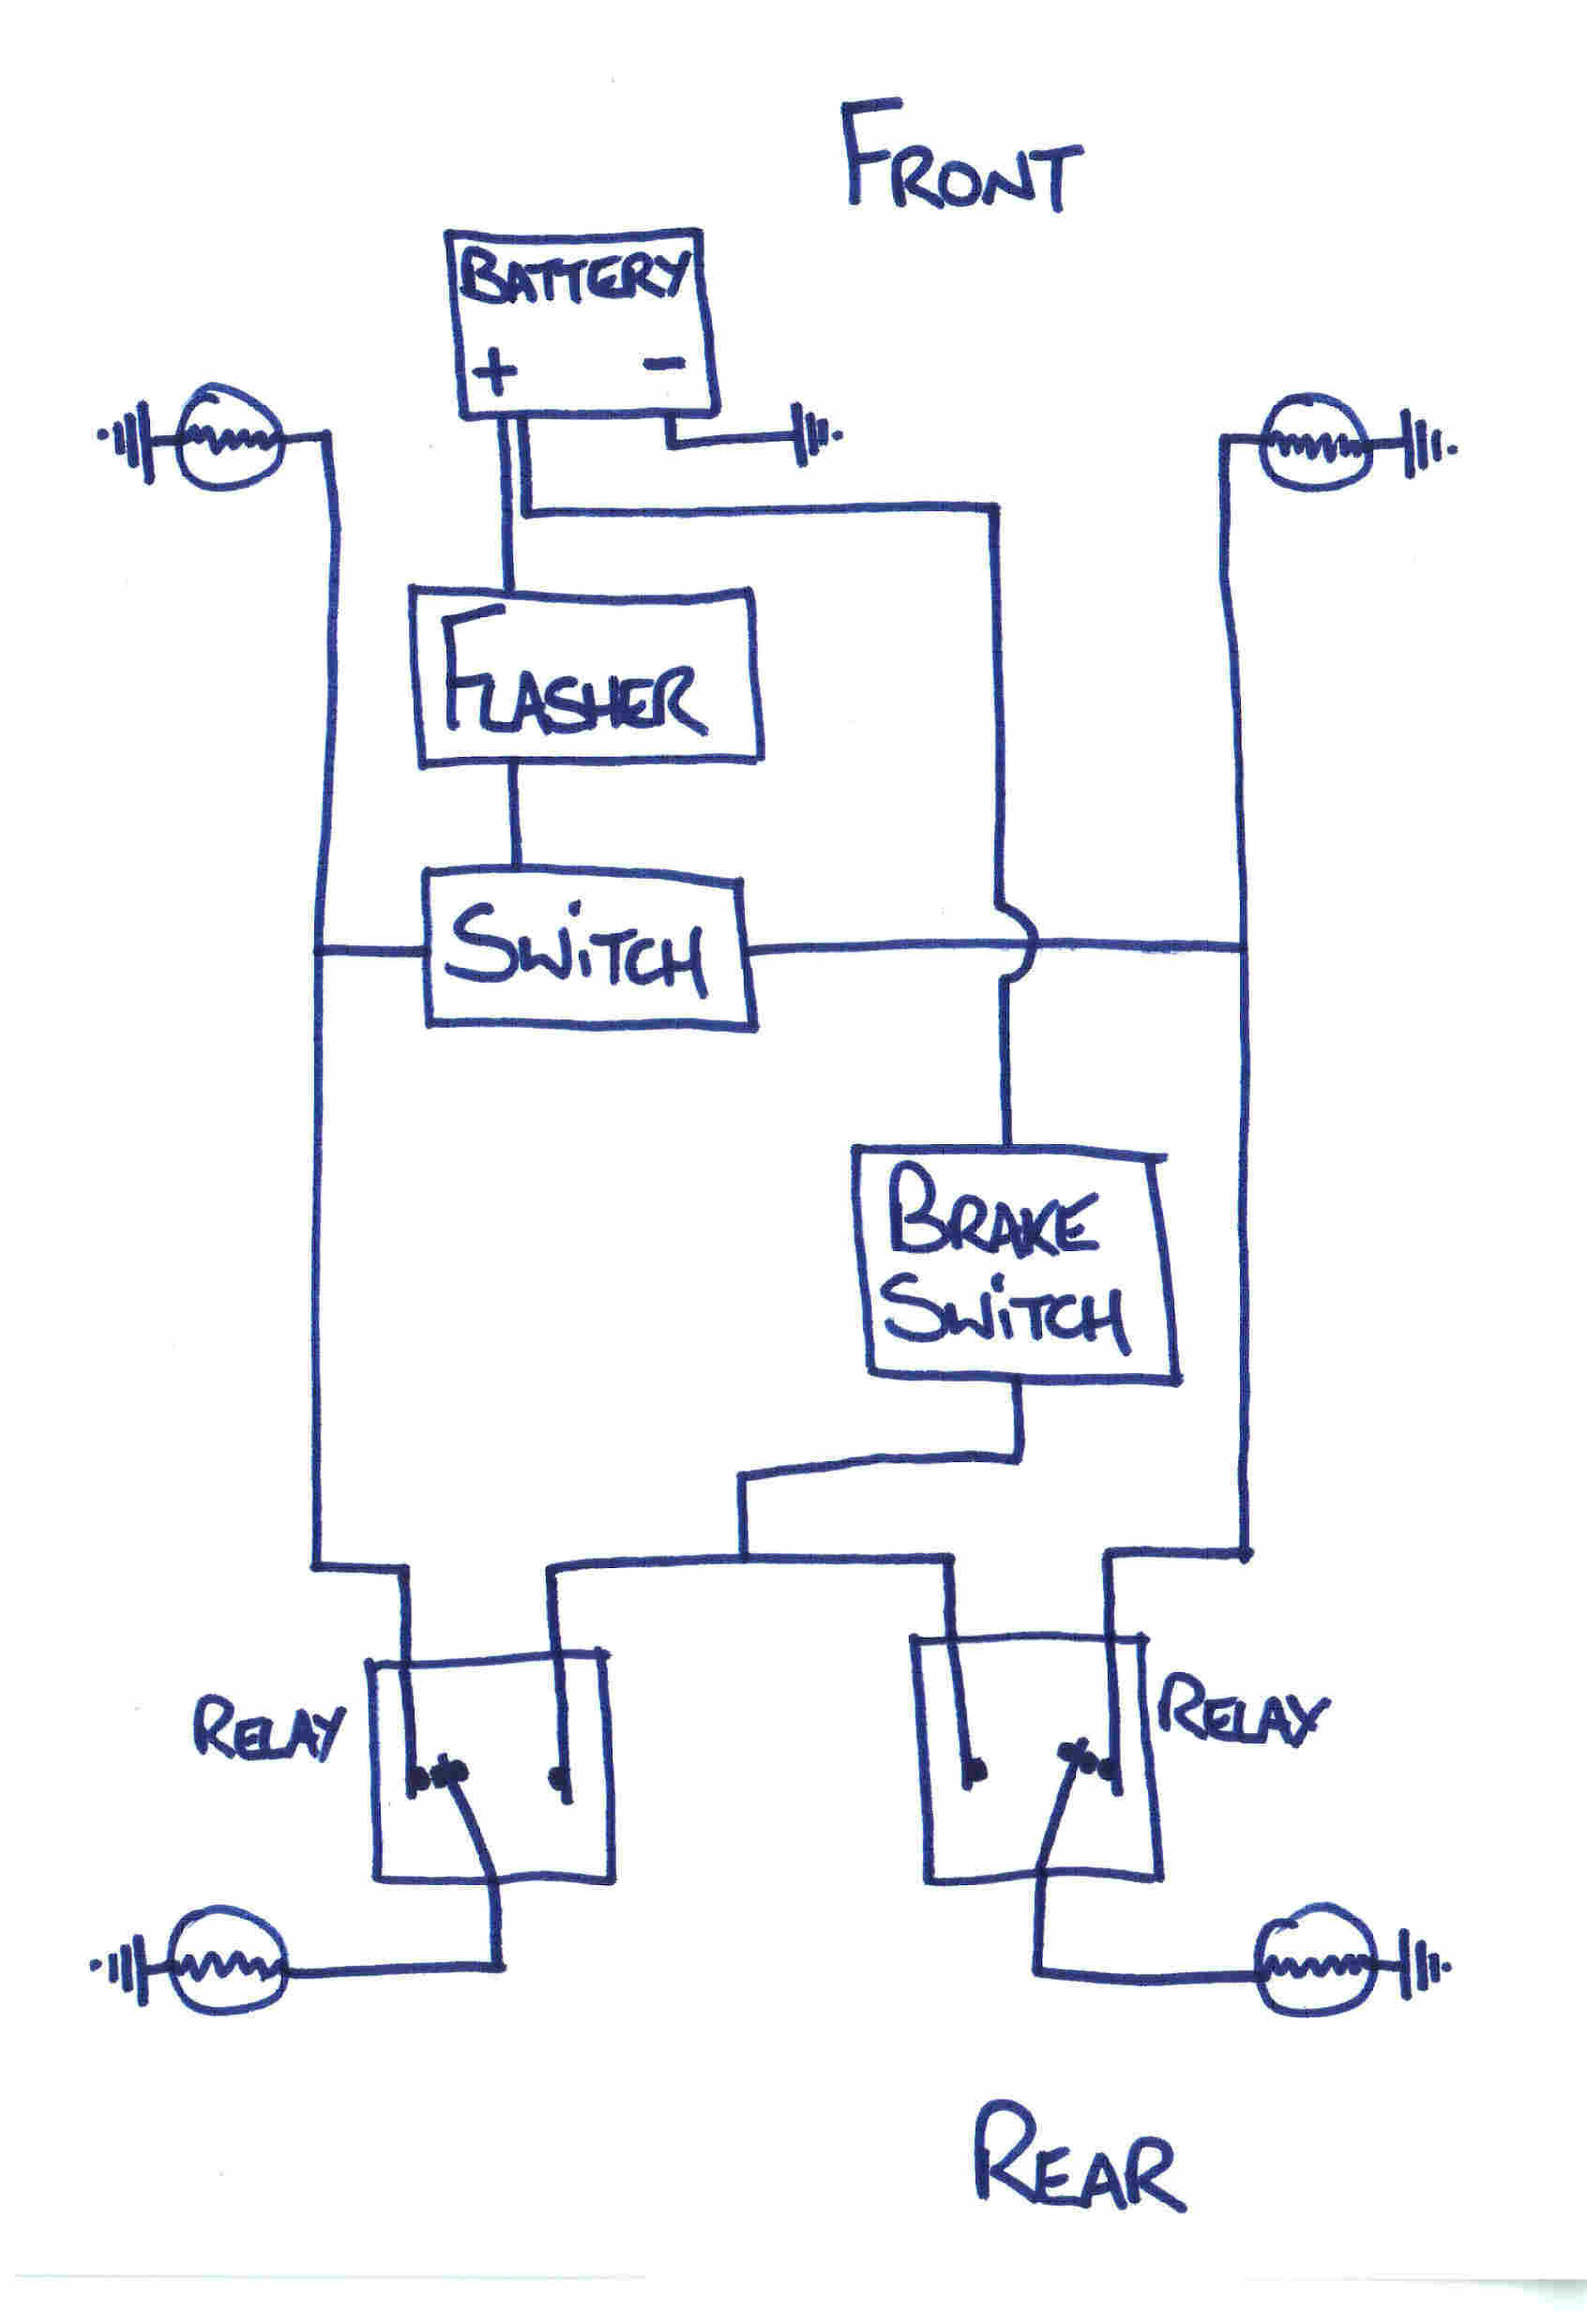 garys_flashers modern flasher circuits car flasher wiring diagram at creativeand.co